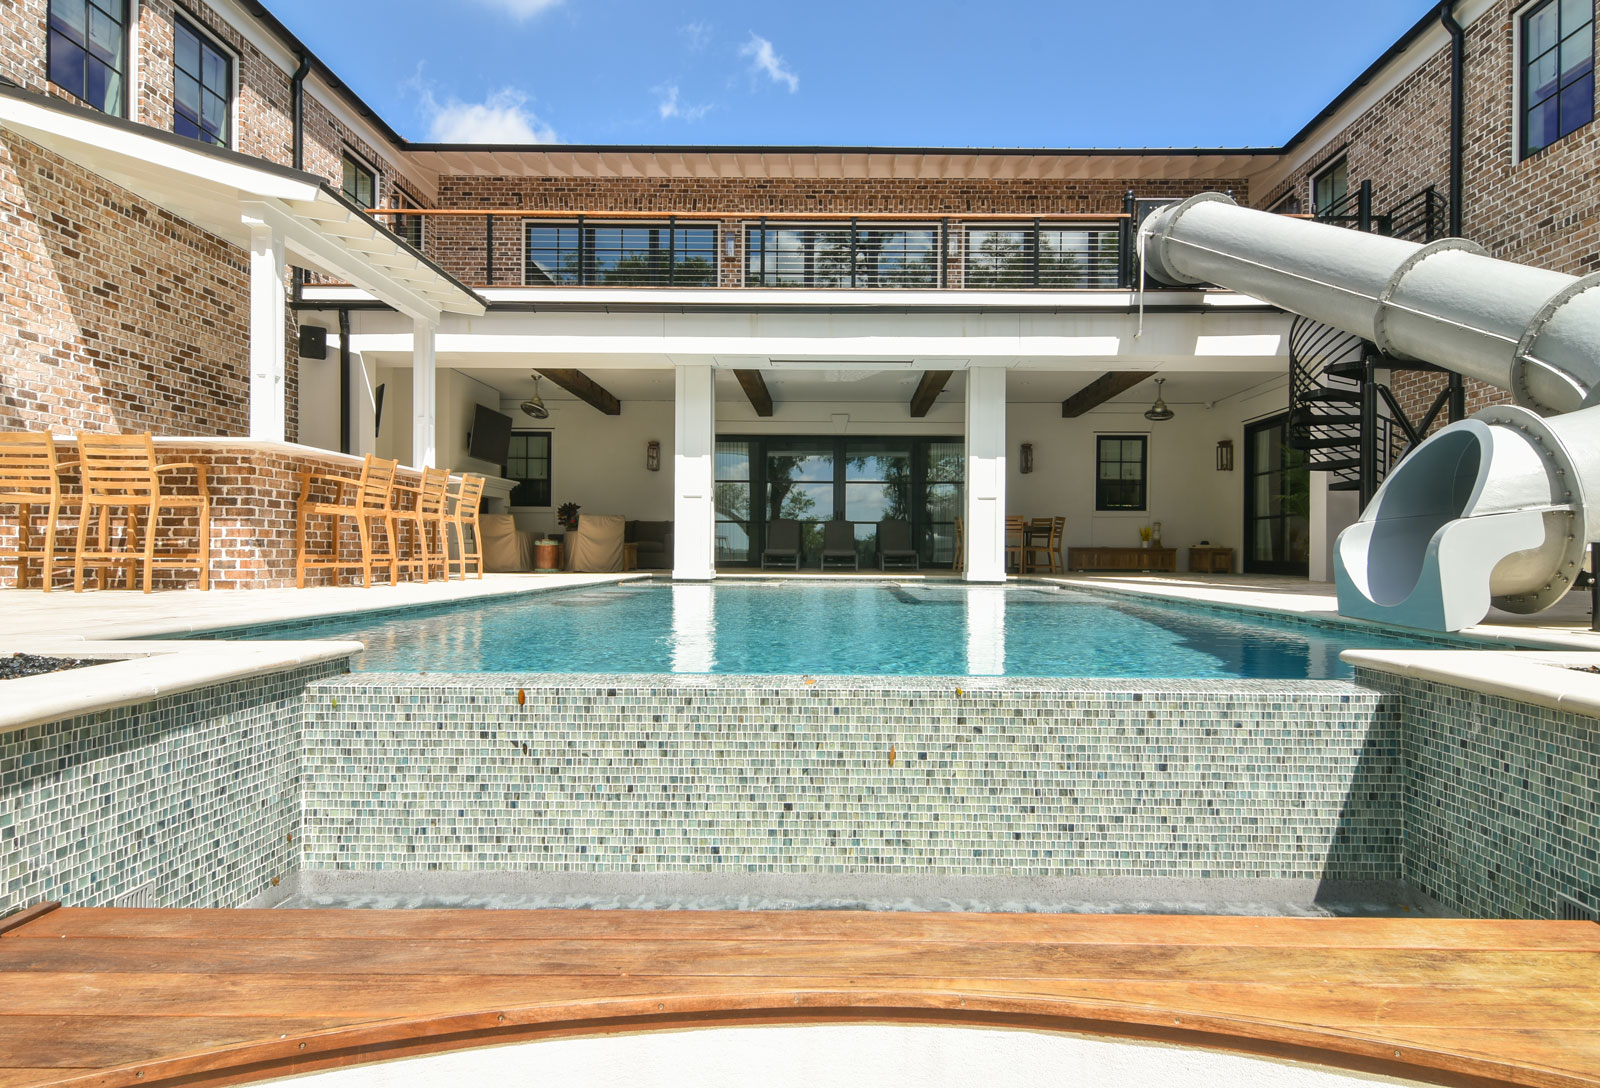 Infinity edge pool and two story water slide in backyard entertaining